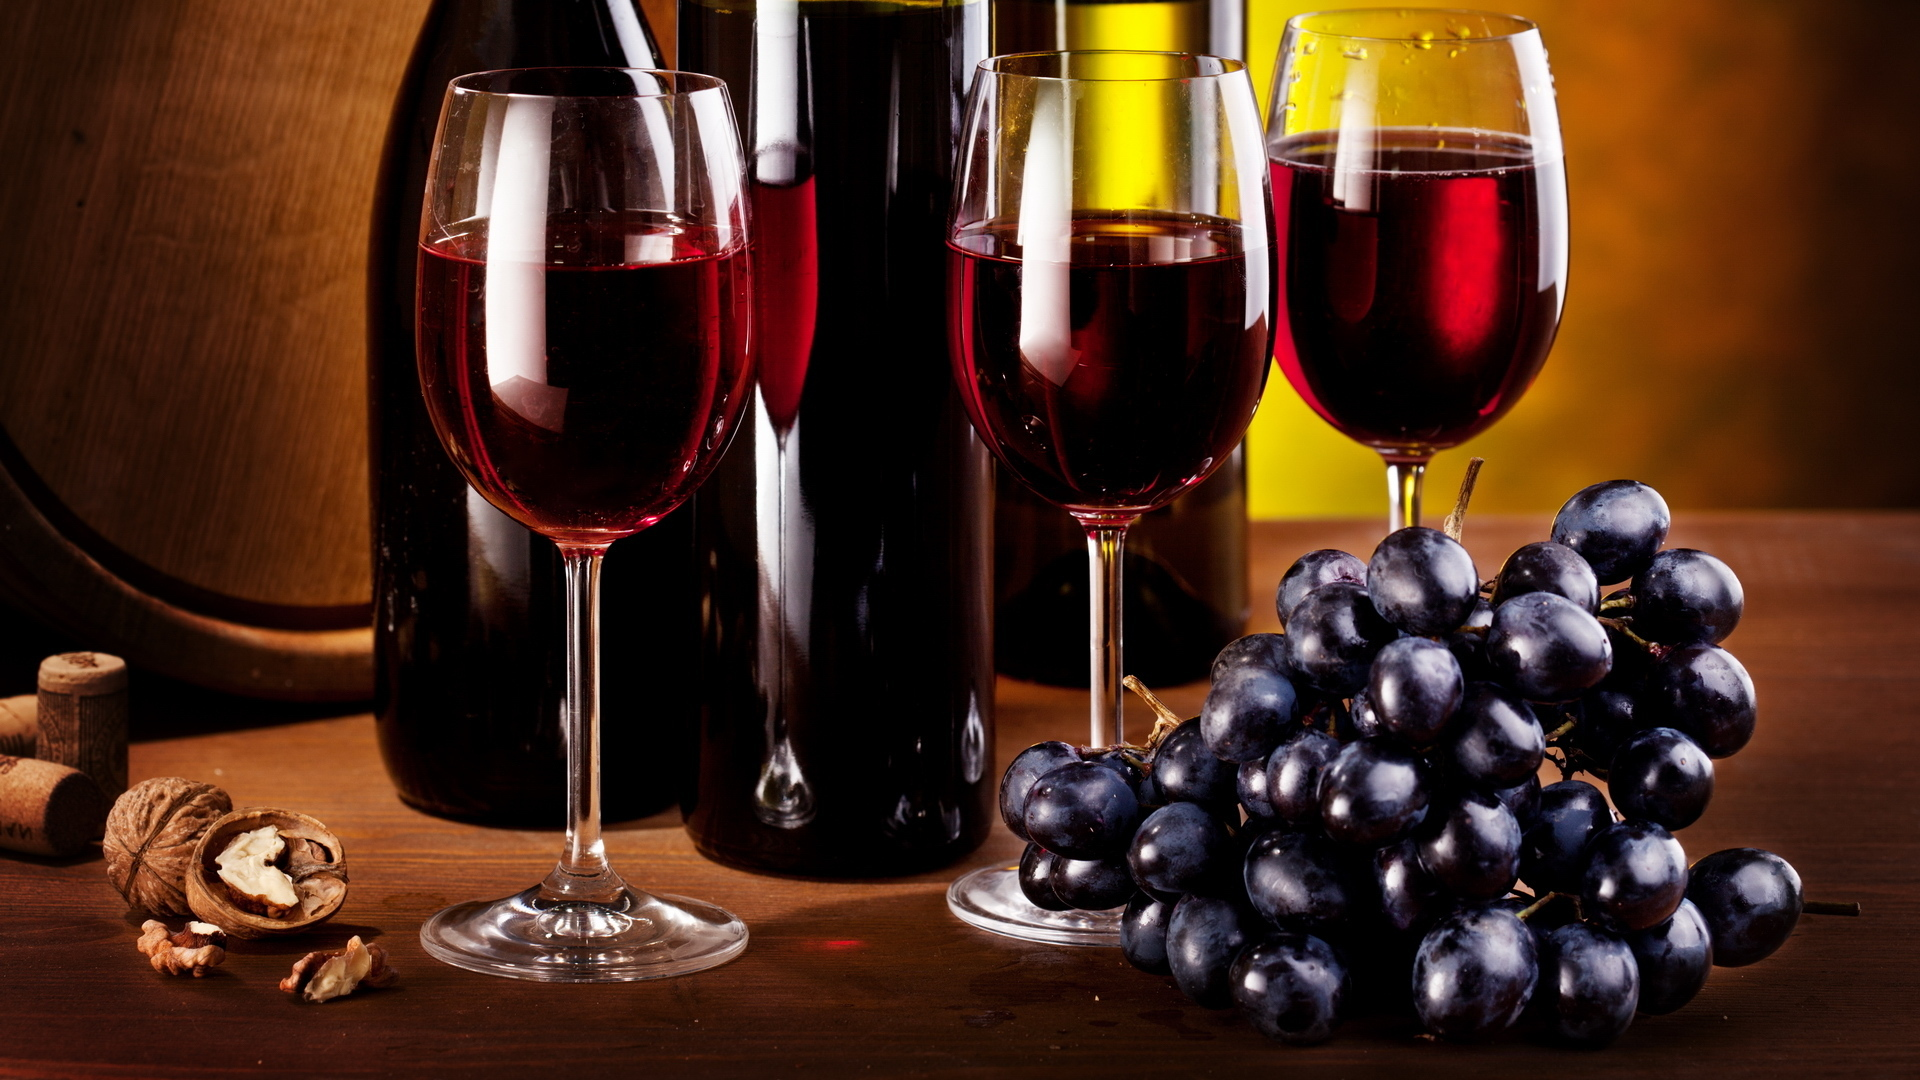 red-wine-widescreen-high-definition-wallpaper-desktop-background-photos